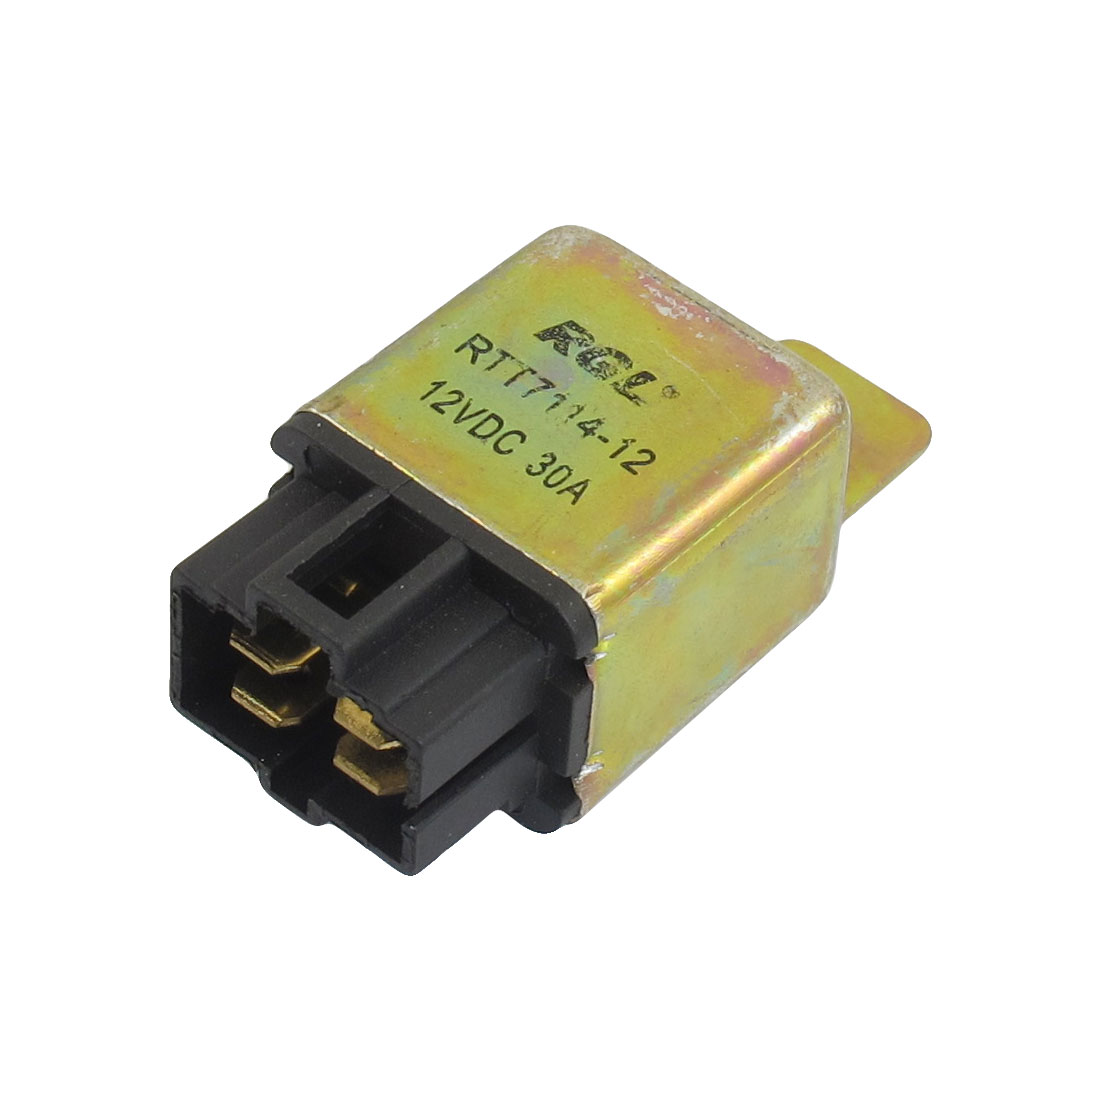 DC 12V 30A NO 4 Pins 6mm Mounting Hole 4 Pins Socket Automotive Truck Car Relay